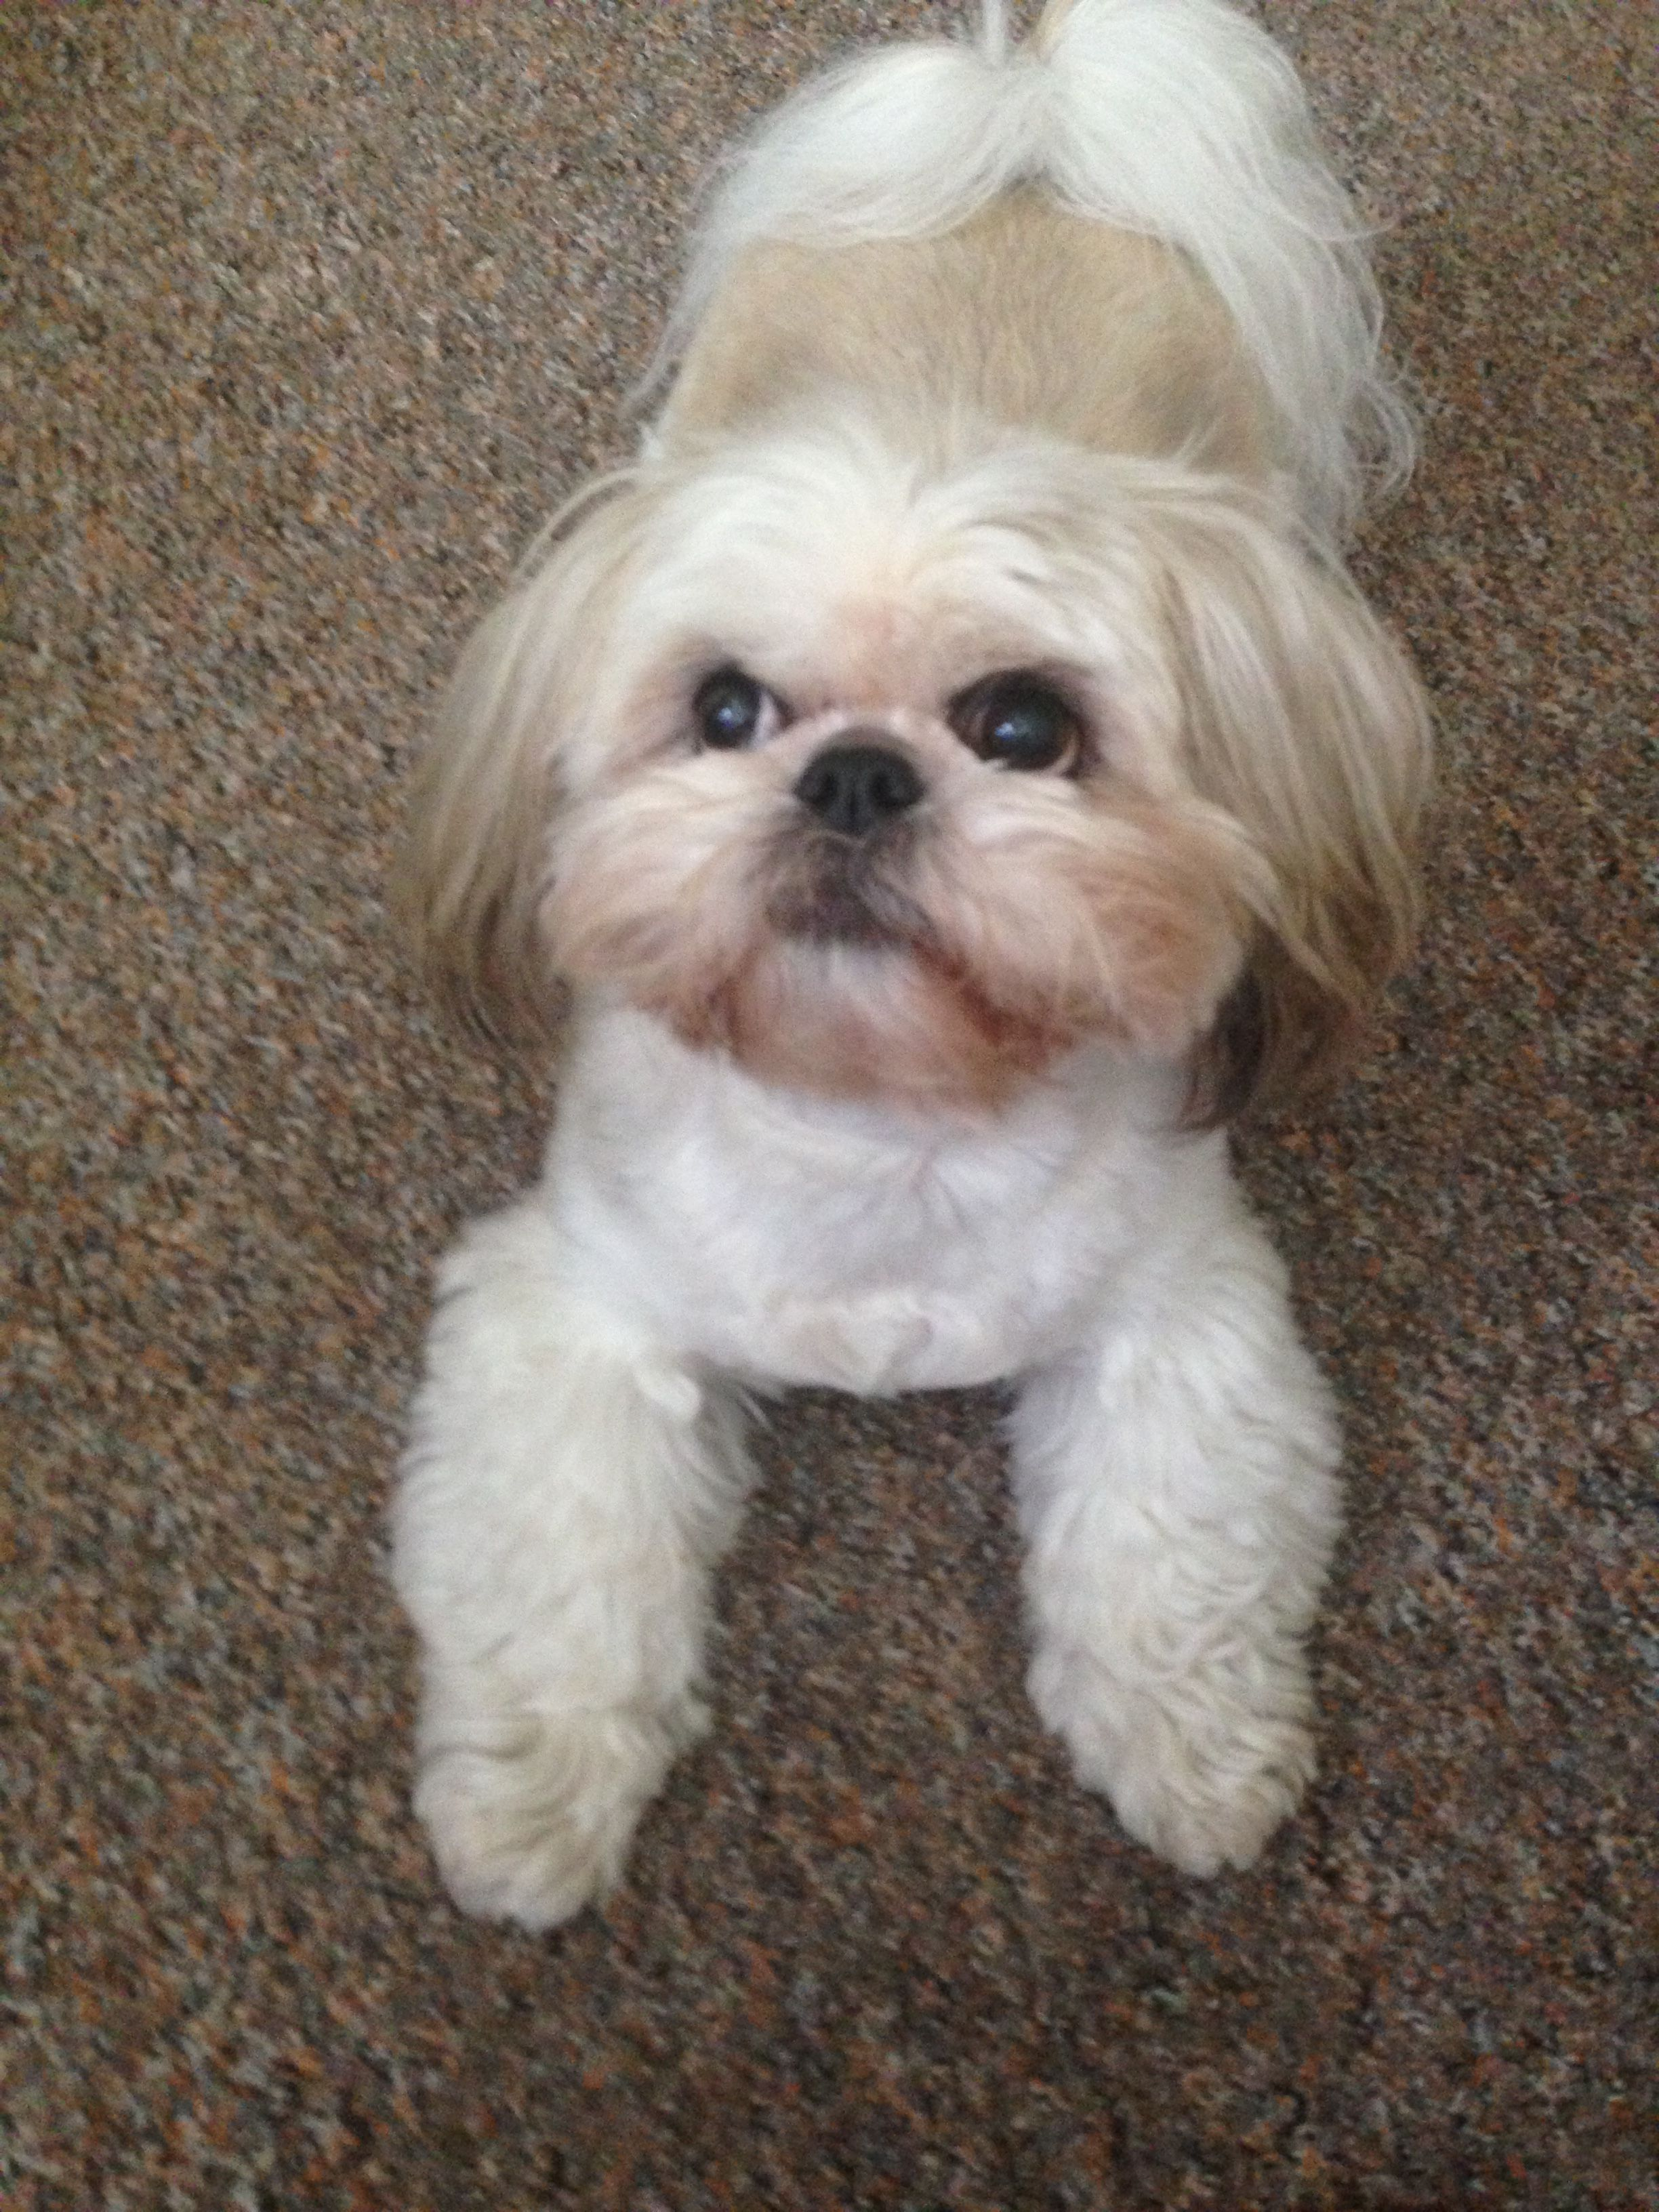 Cheeky Face Look At Those Fluffy Paws Maisy The Shih Tzu Cutest Small Dog Breeds Cute Small Dogs Shih Tzu